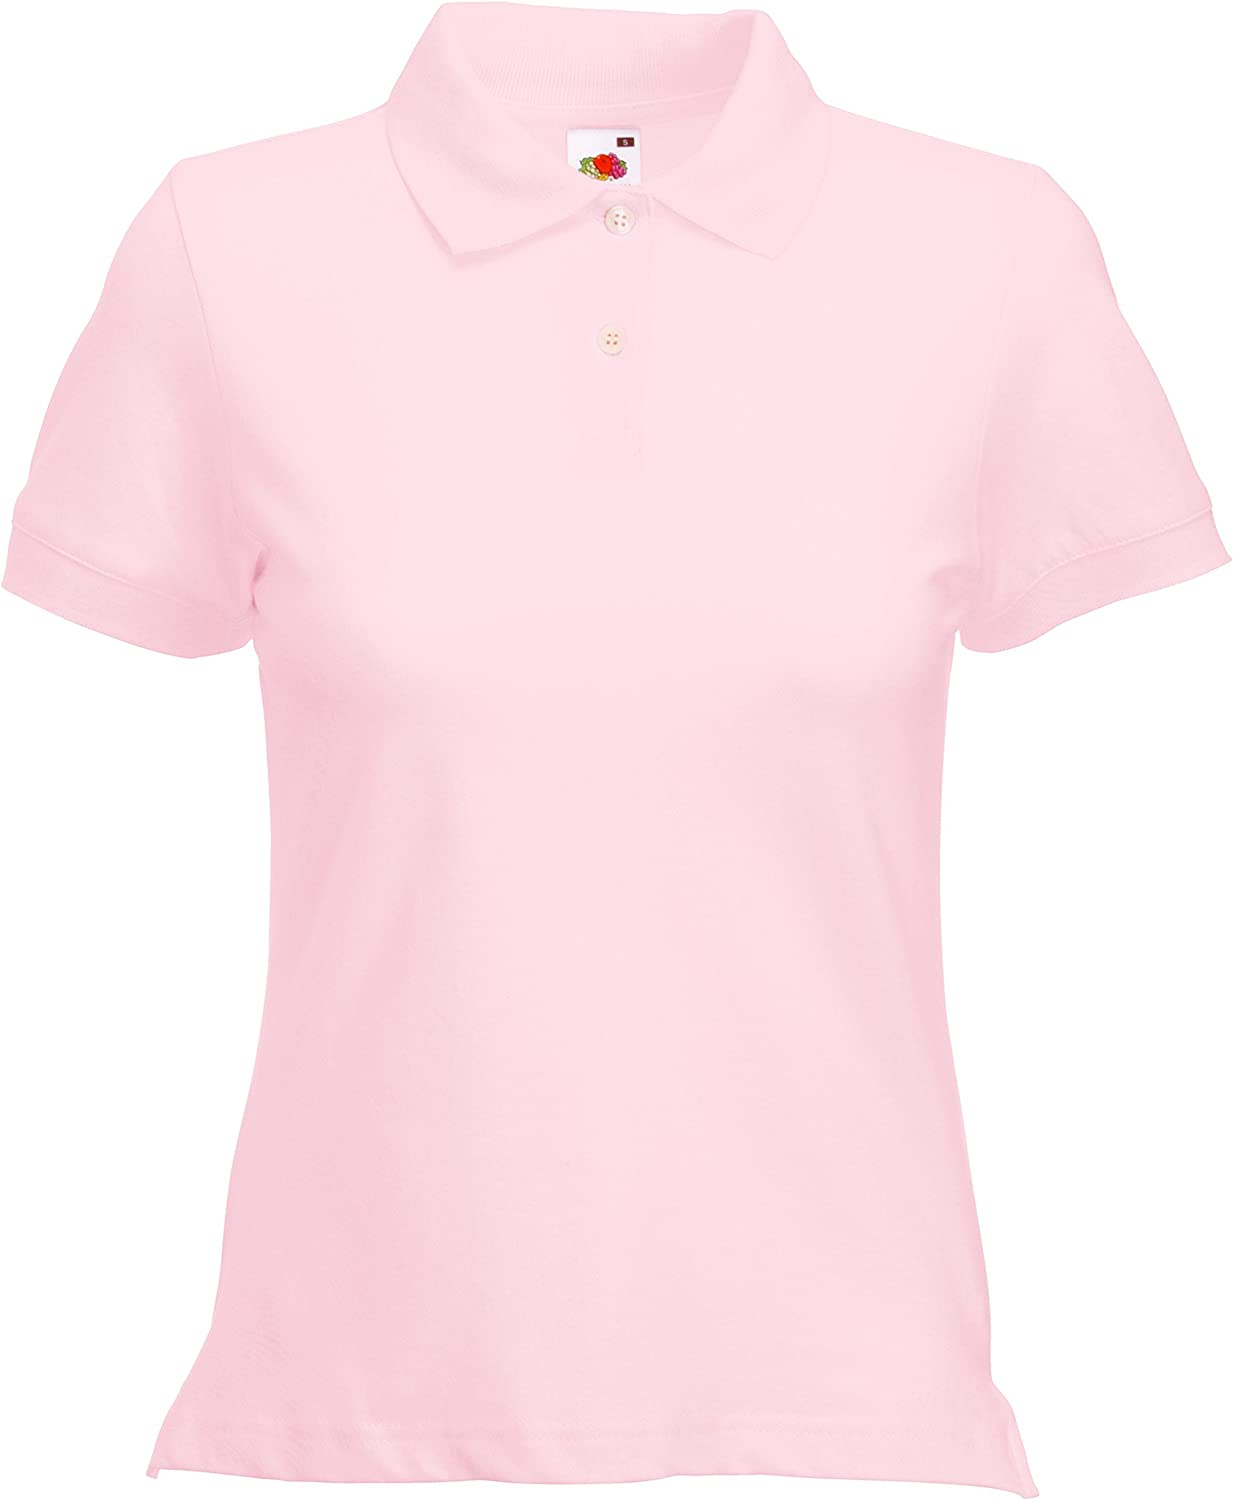 Fruit of the Loom- Polo de Manga Corta Ajustado para Mujer: Amazon ...